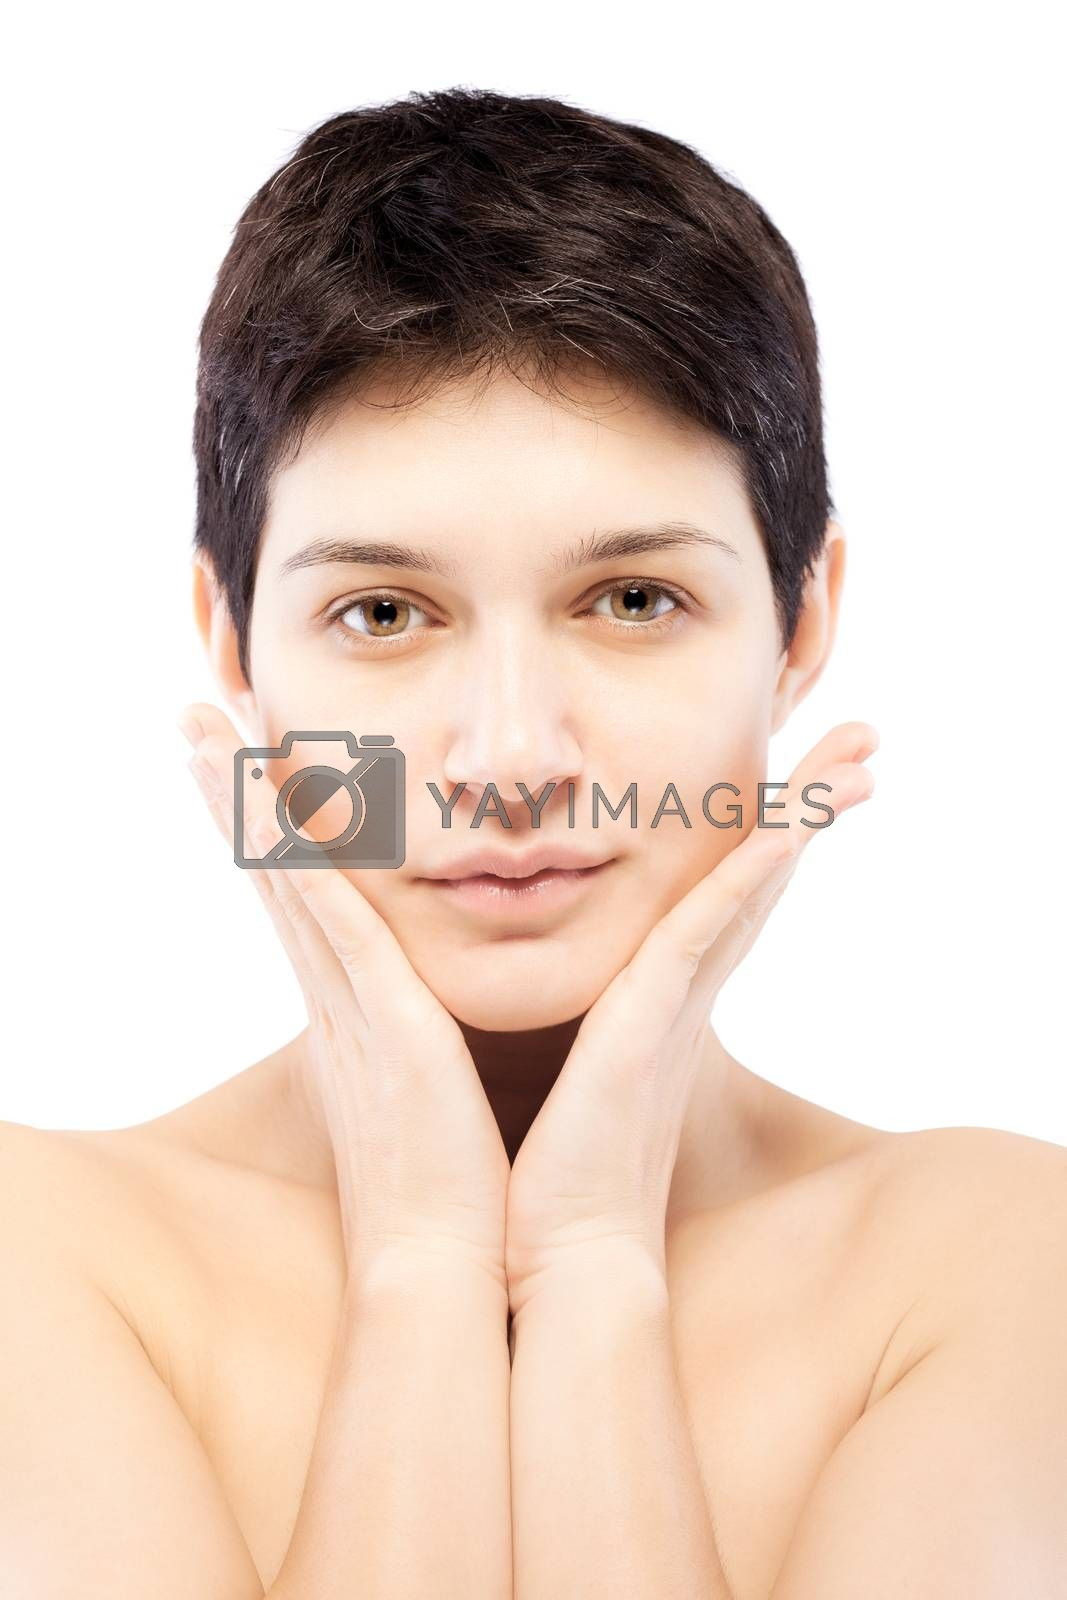 girl with a short hairtouching her face